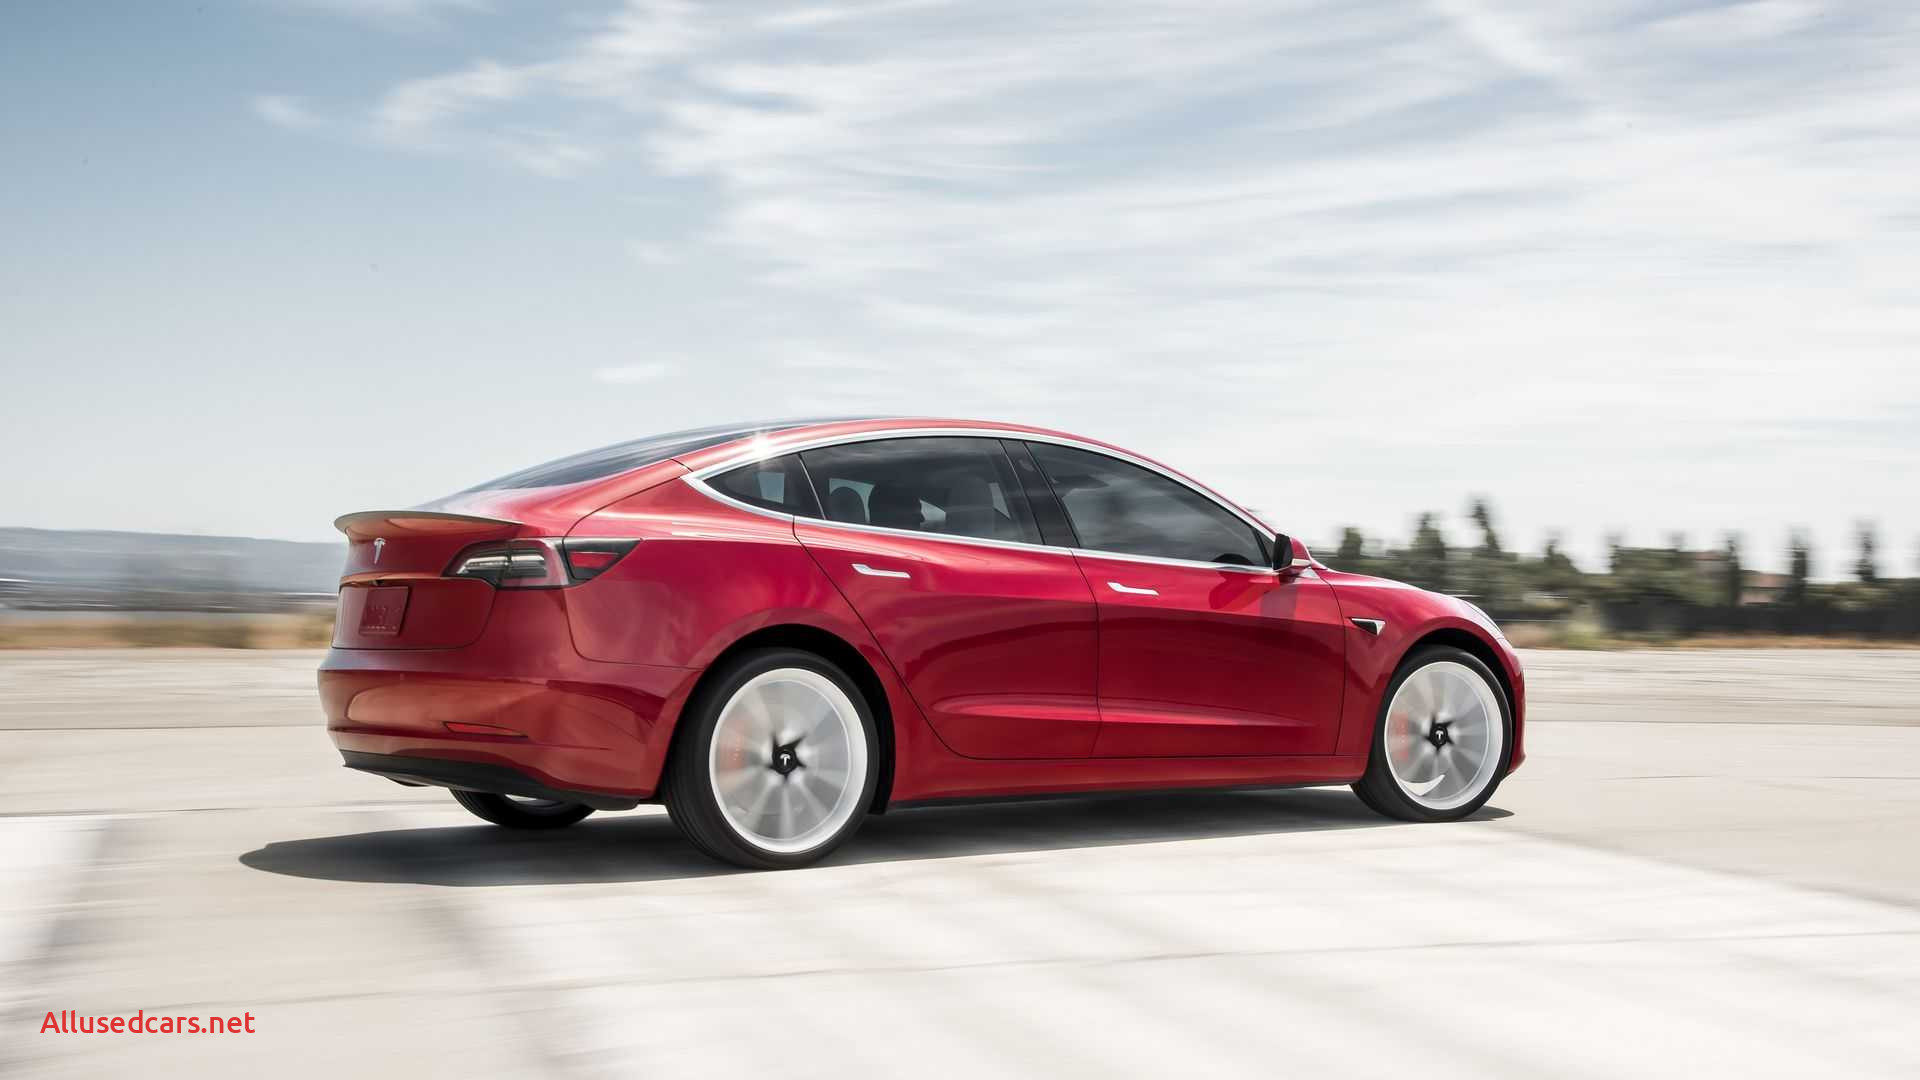 tesla model 3 0 to 60 mph how quick is it pared to other teslas